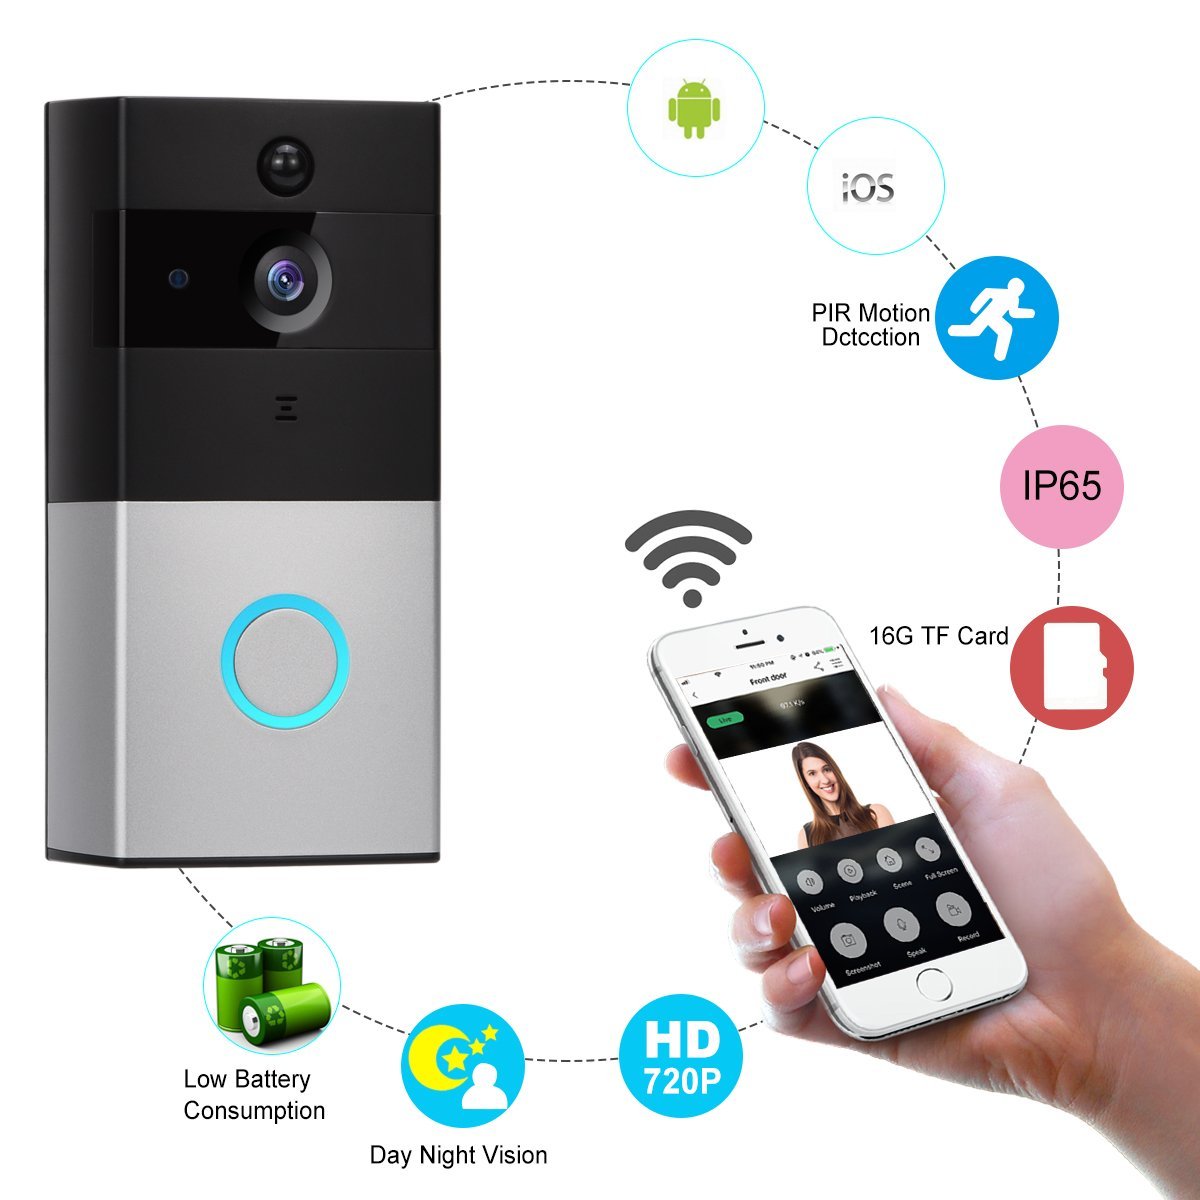 Akpote Video Doorbell,Smart WiFi Camera 720P HD 166ﹾ Lens with 6 LED Night Vision Wireless Visual Doorbell IP55 Real-Time Two-Way Audio PIR Motion Detection, App for iOS and Android with 16G TF Card